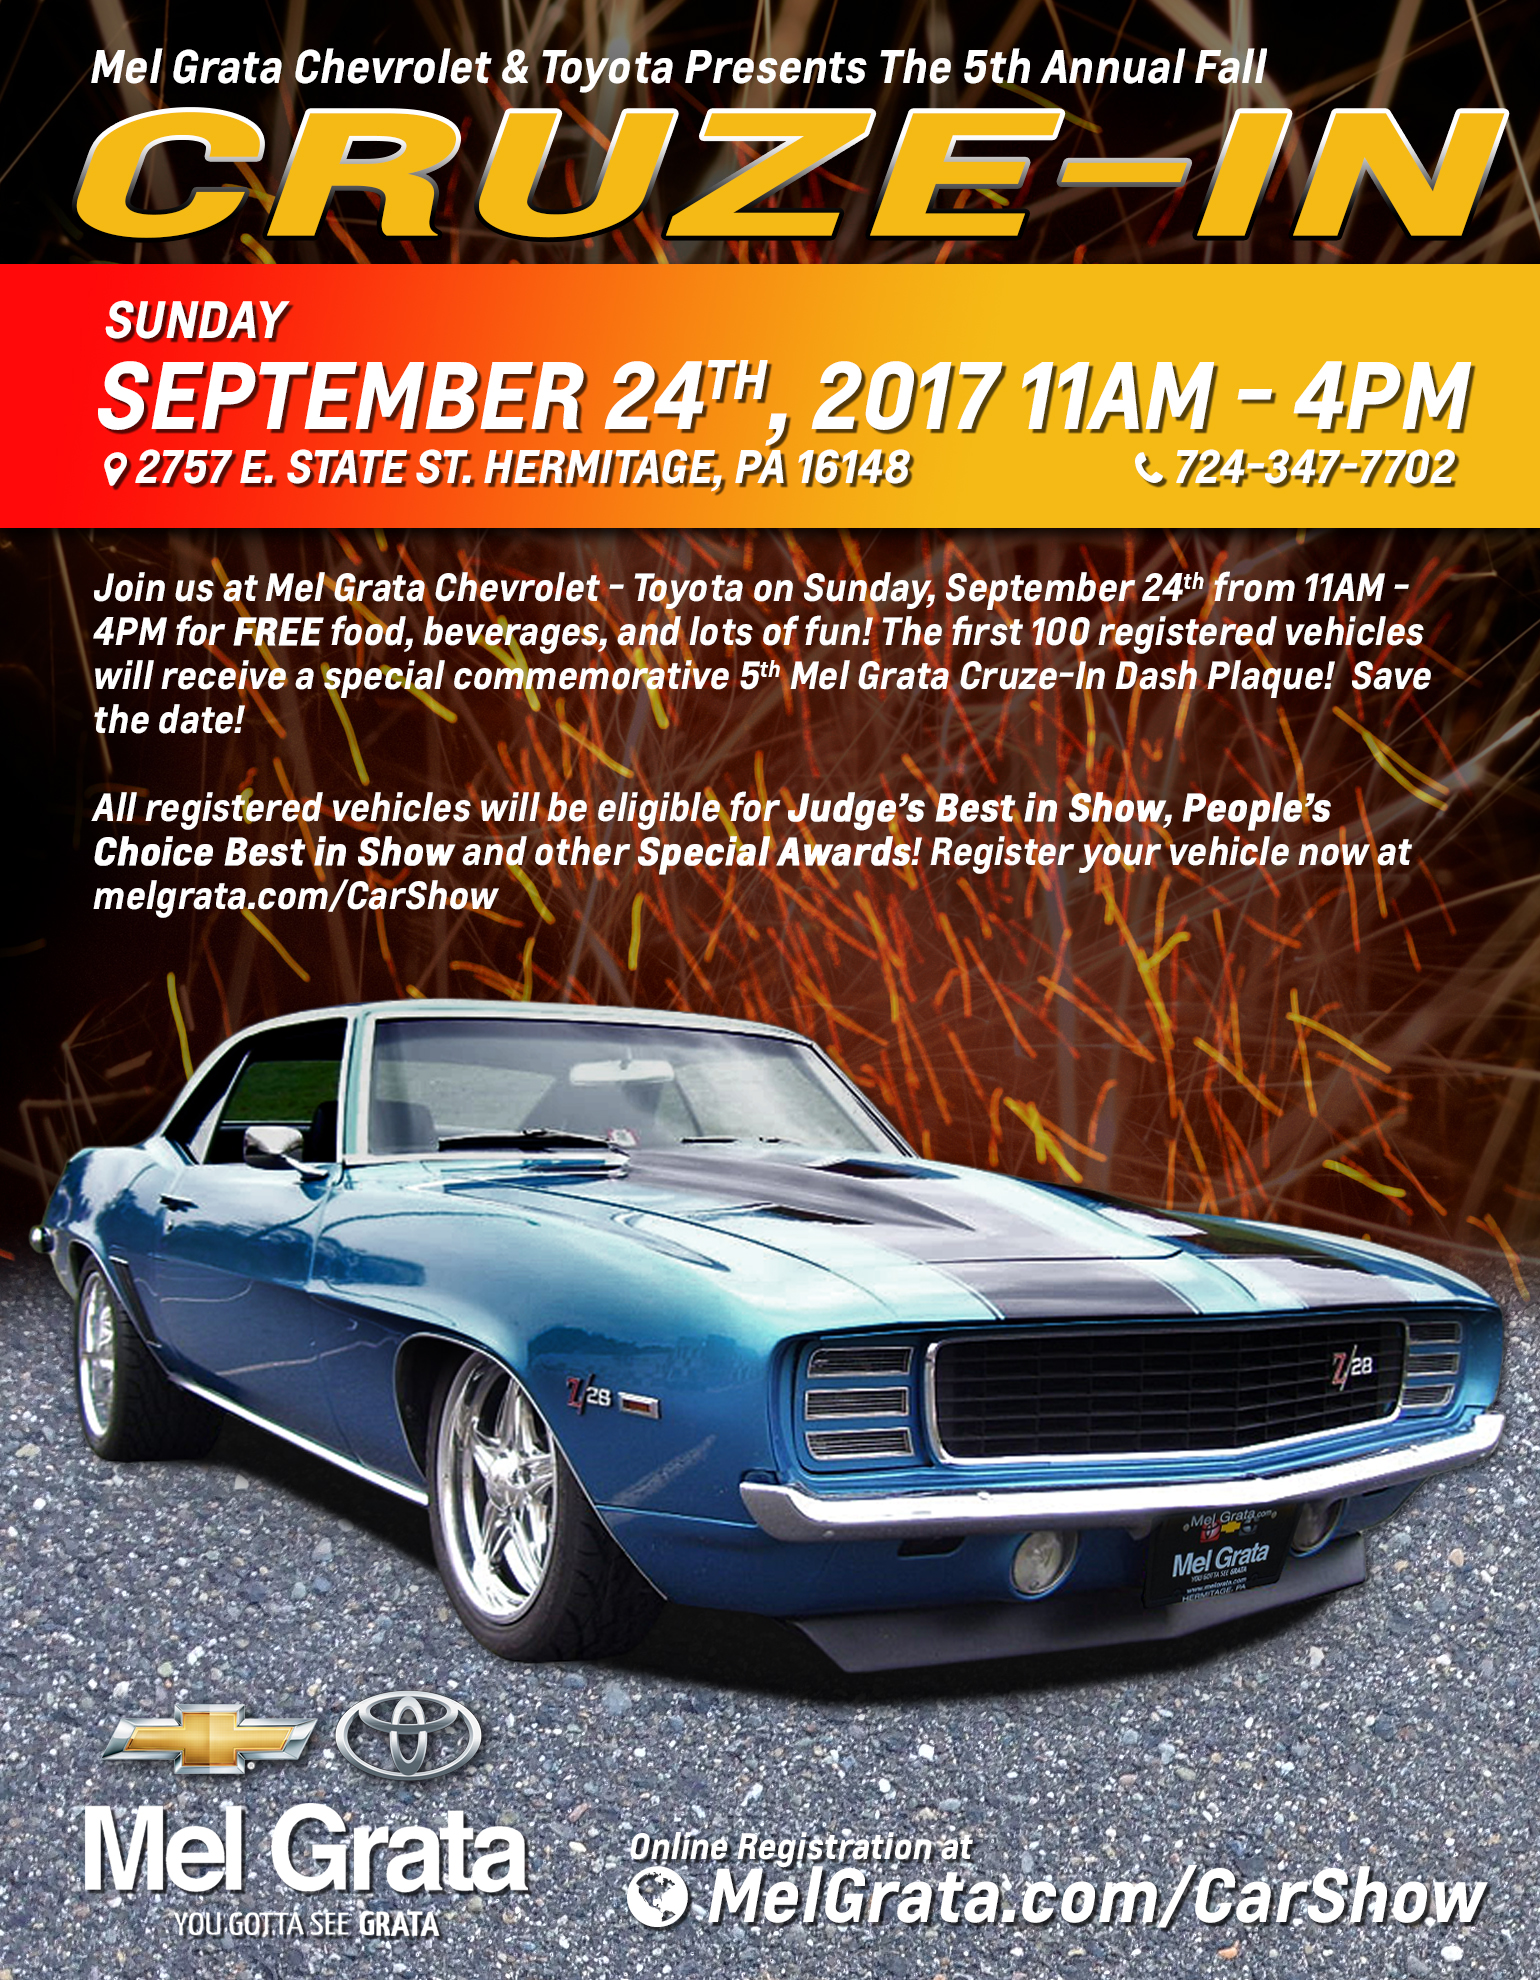 Mel Grata Toyota >> 5th Annual Fall Cruze In At Mel Grata Chevrolet Toyota Car Show